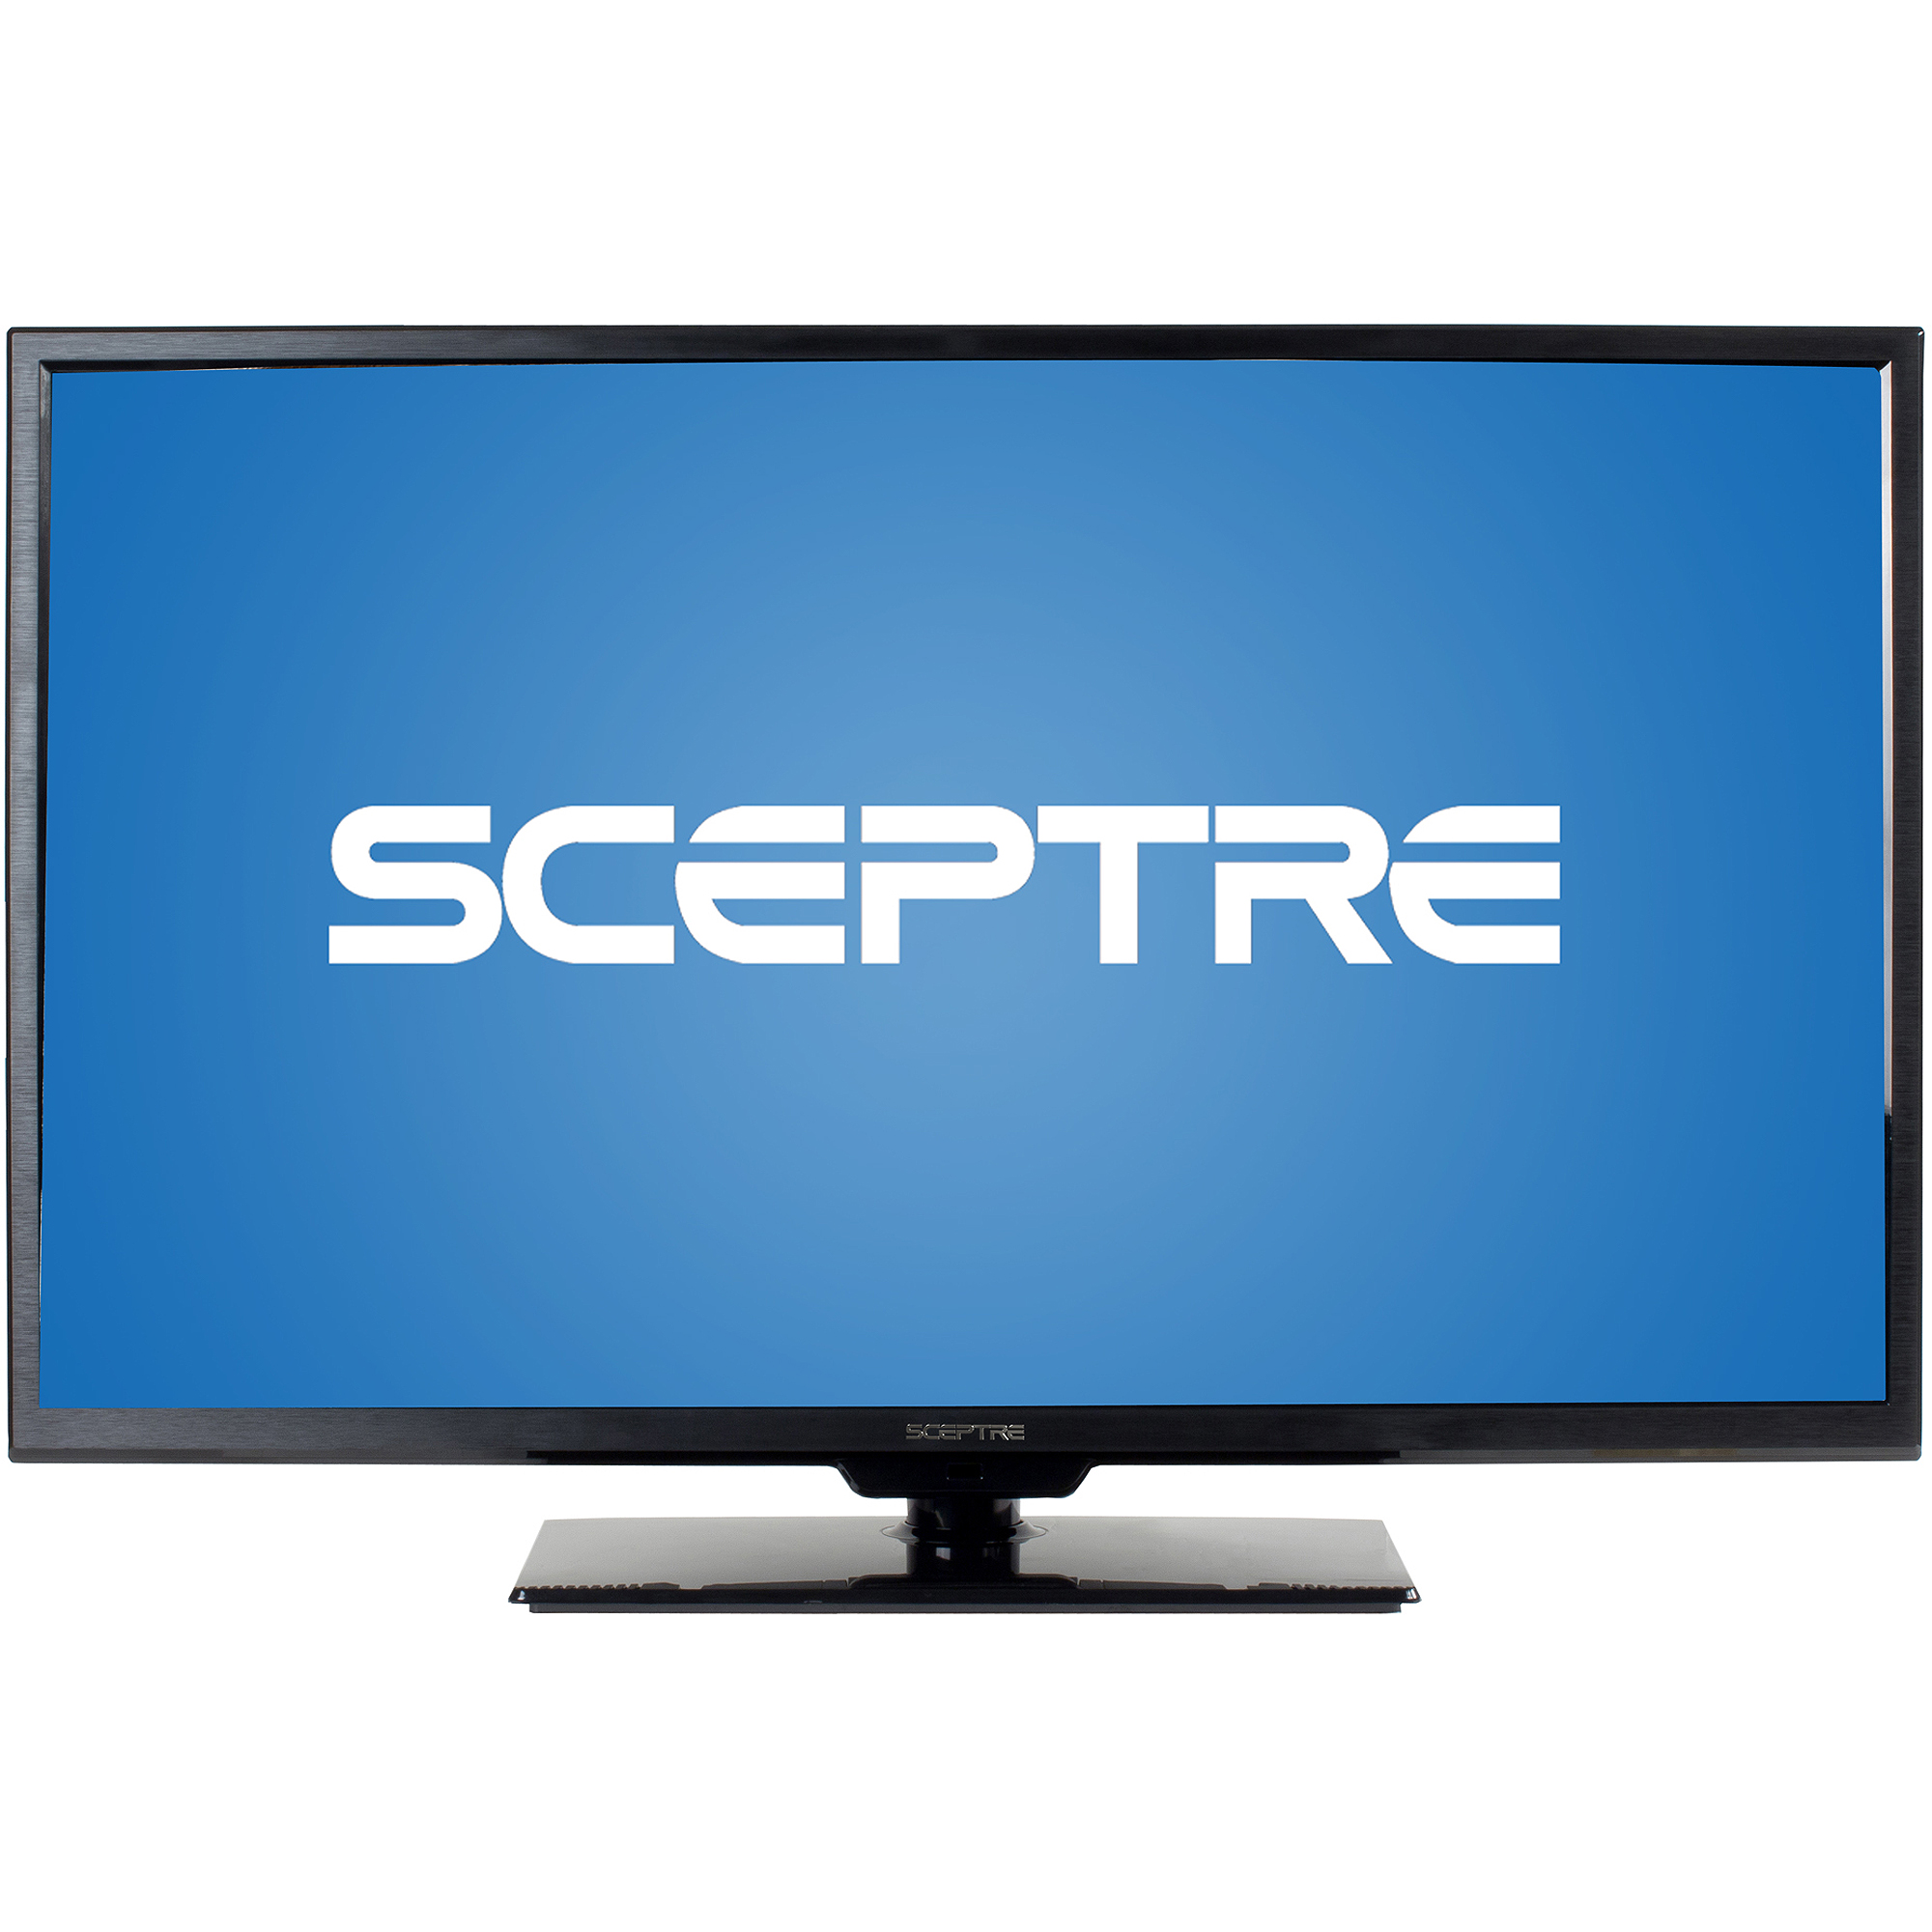 "SCEPTRE X325BV-F 32"" LED Class 1080P HDTV with Ultra-Slim Metal Brush Bezel, MHL"